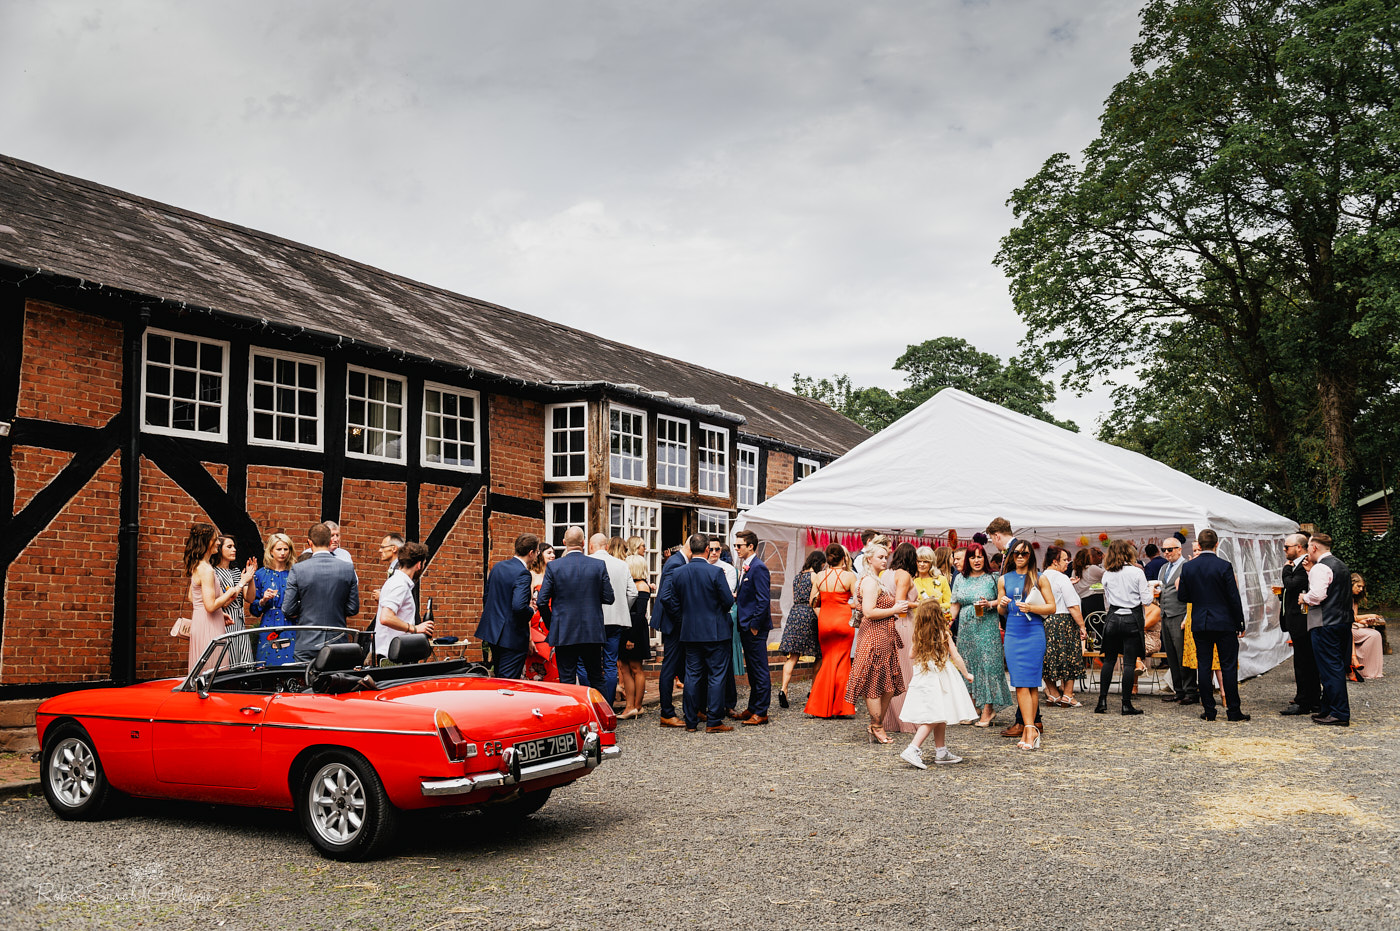 Wedding reception at village hall in Belbroughton, Worcestershire